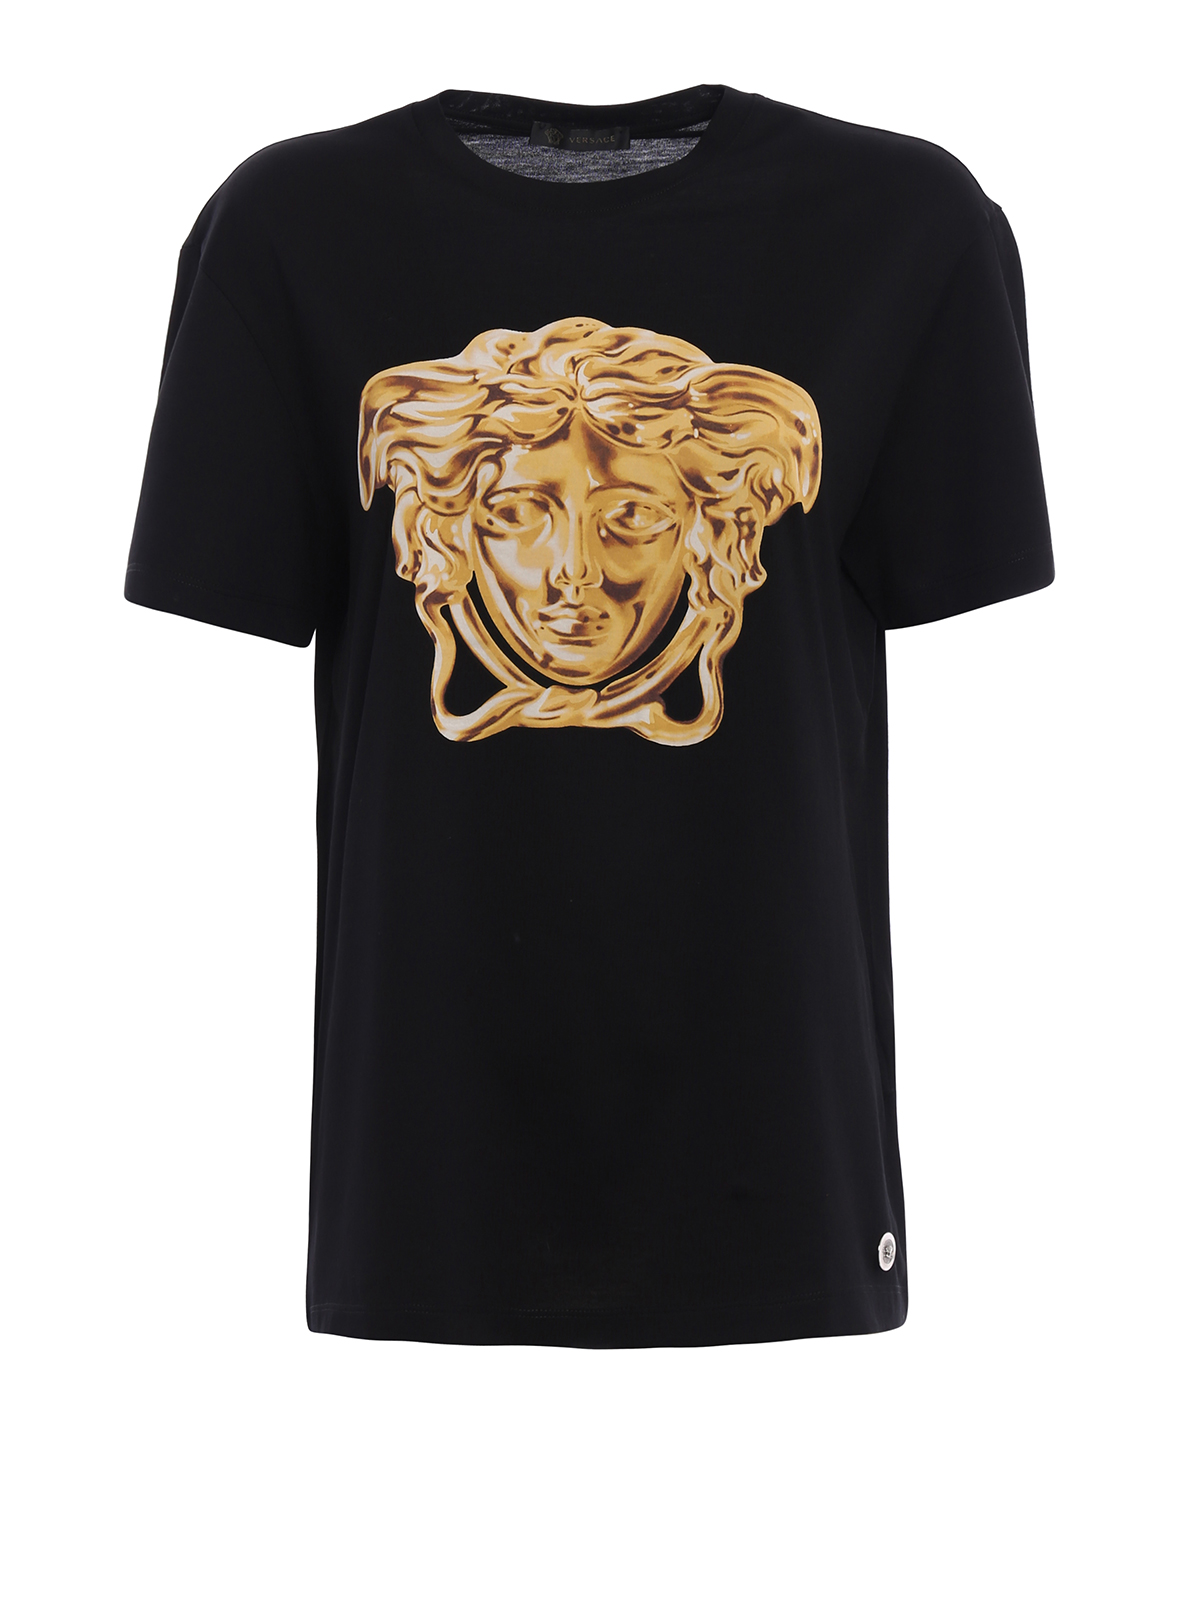 Medusa Head print T-shirt by Versace - t-shirts | iKRIX